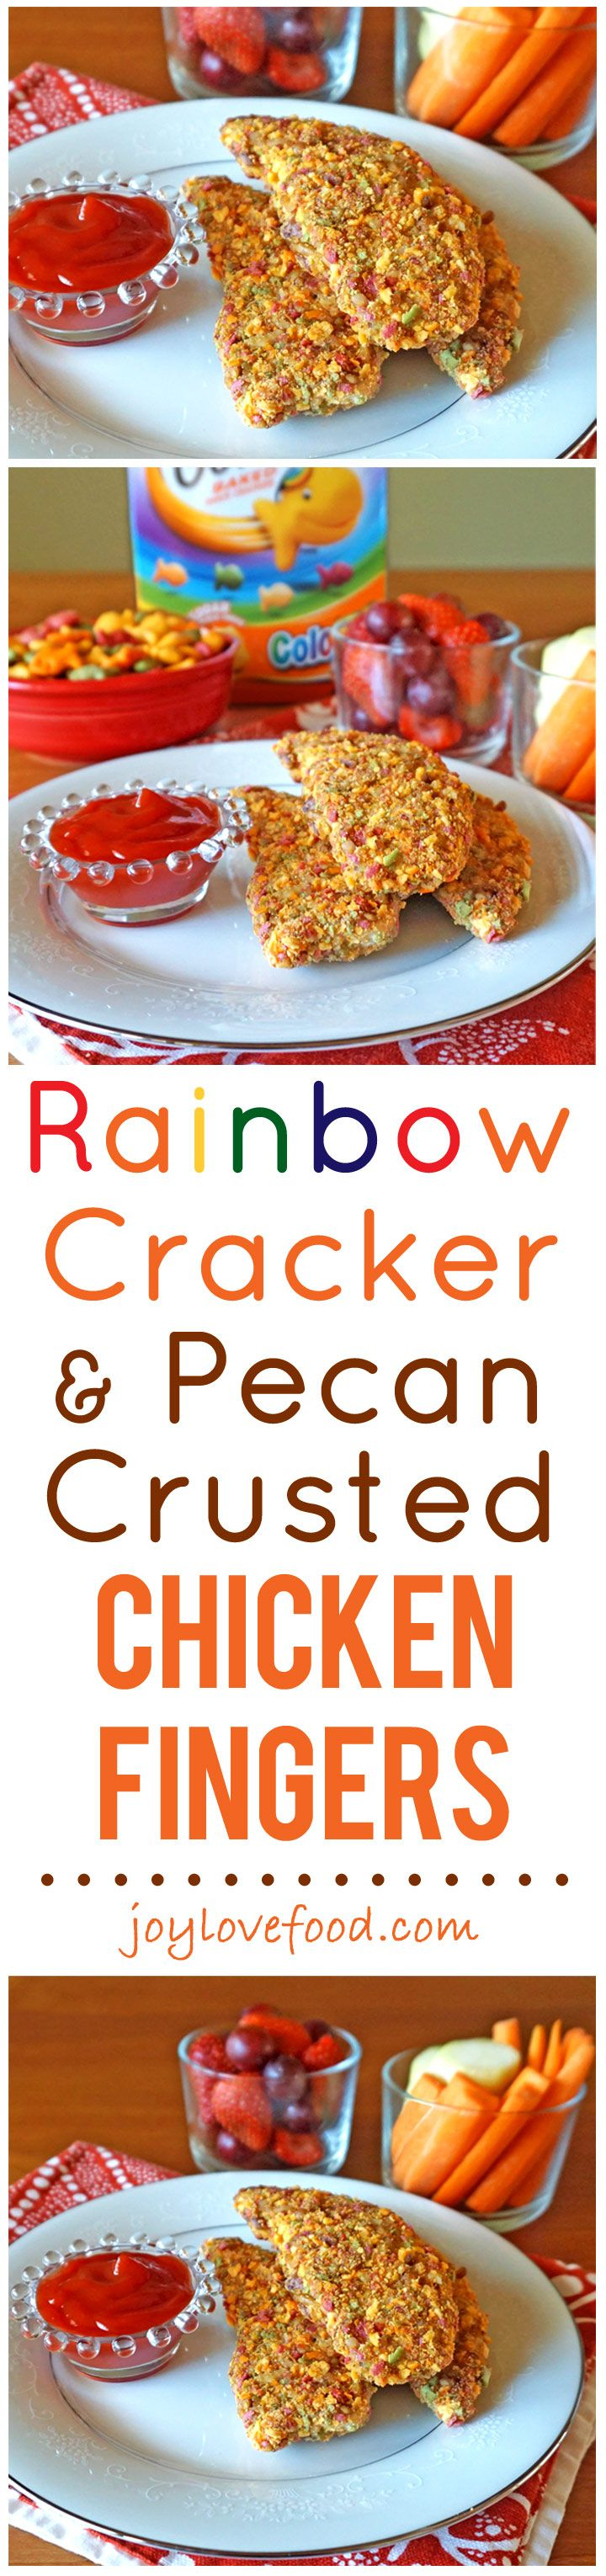 Rainbow Cracker and Pecan Crusted Chicken Fingers | Recipe ...